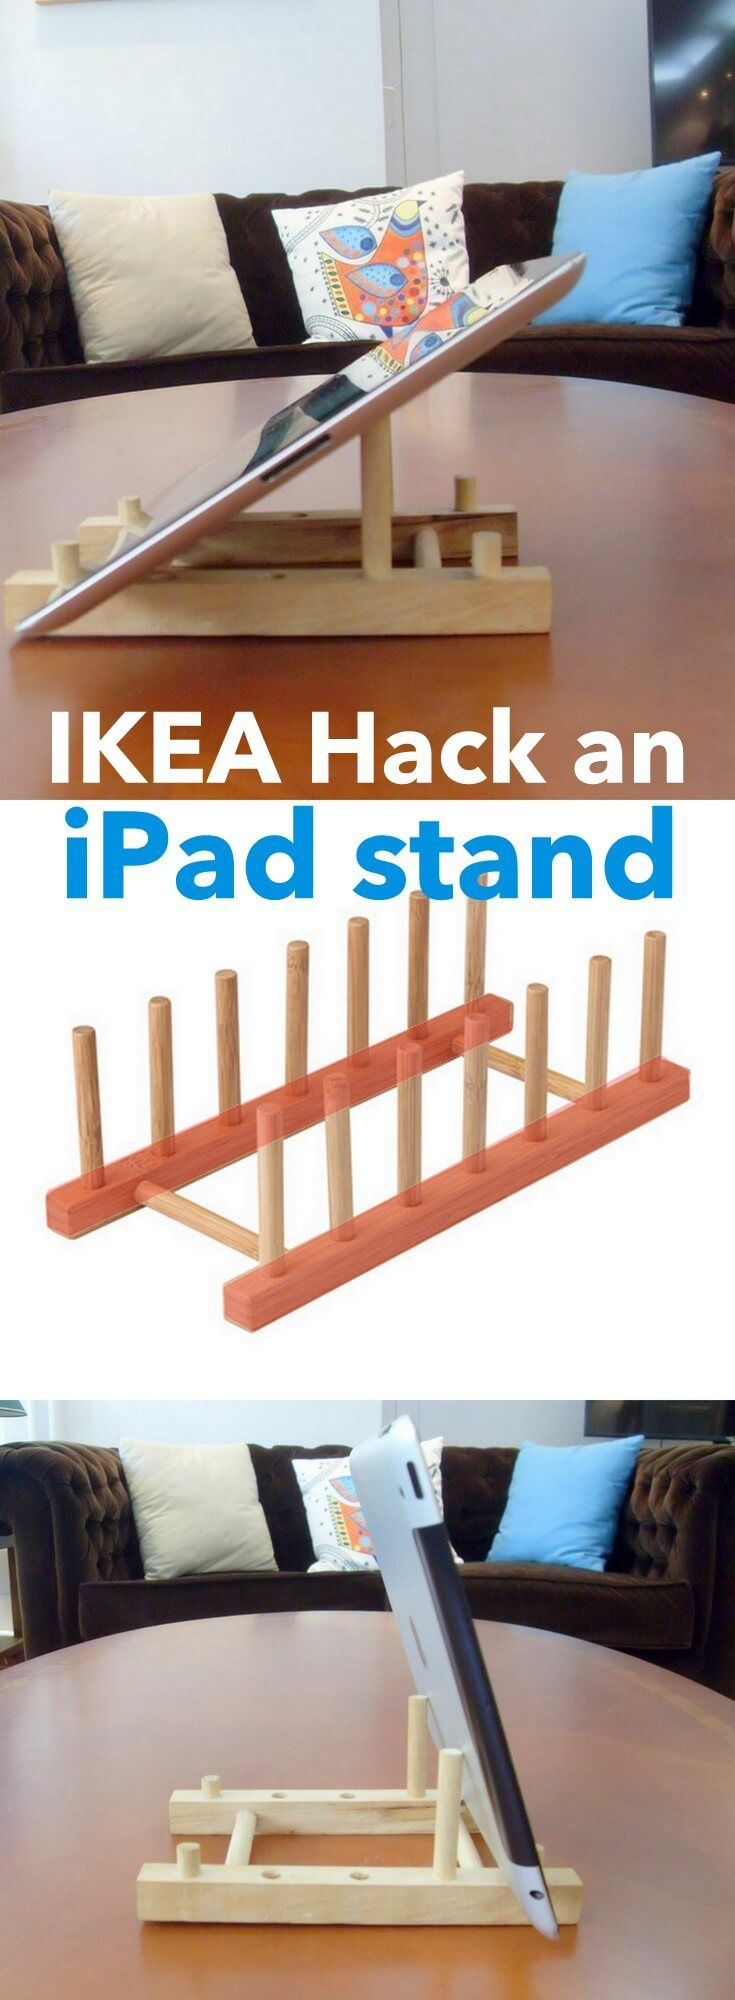 Bordenhouder Ikea Turn A Cheap Wooden Plate Holder To An Ipad Stand Ikea Idee